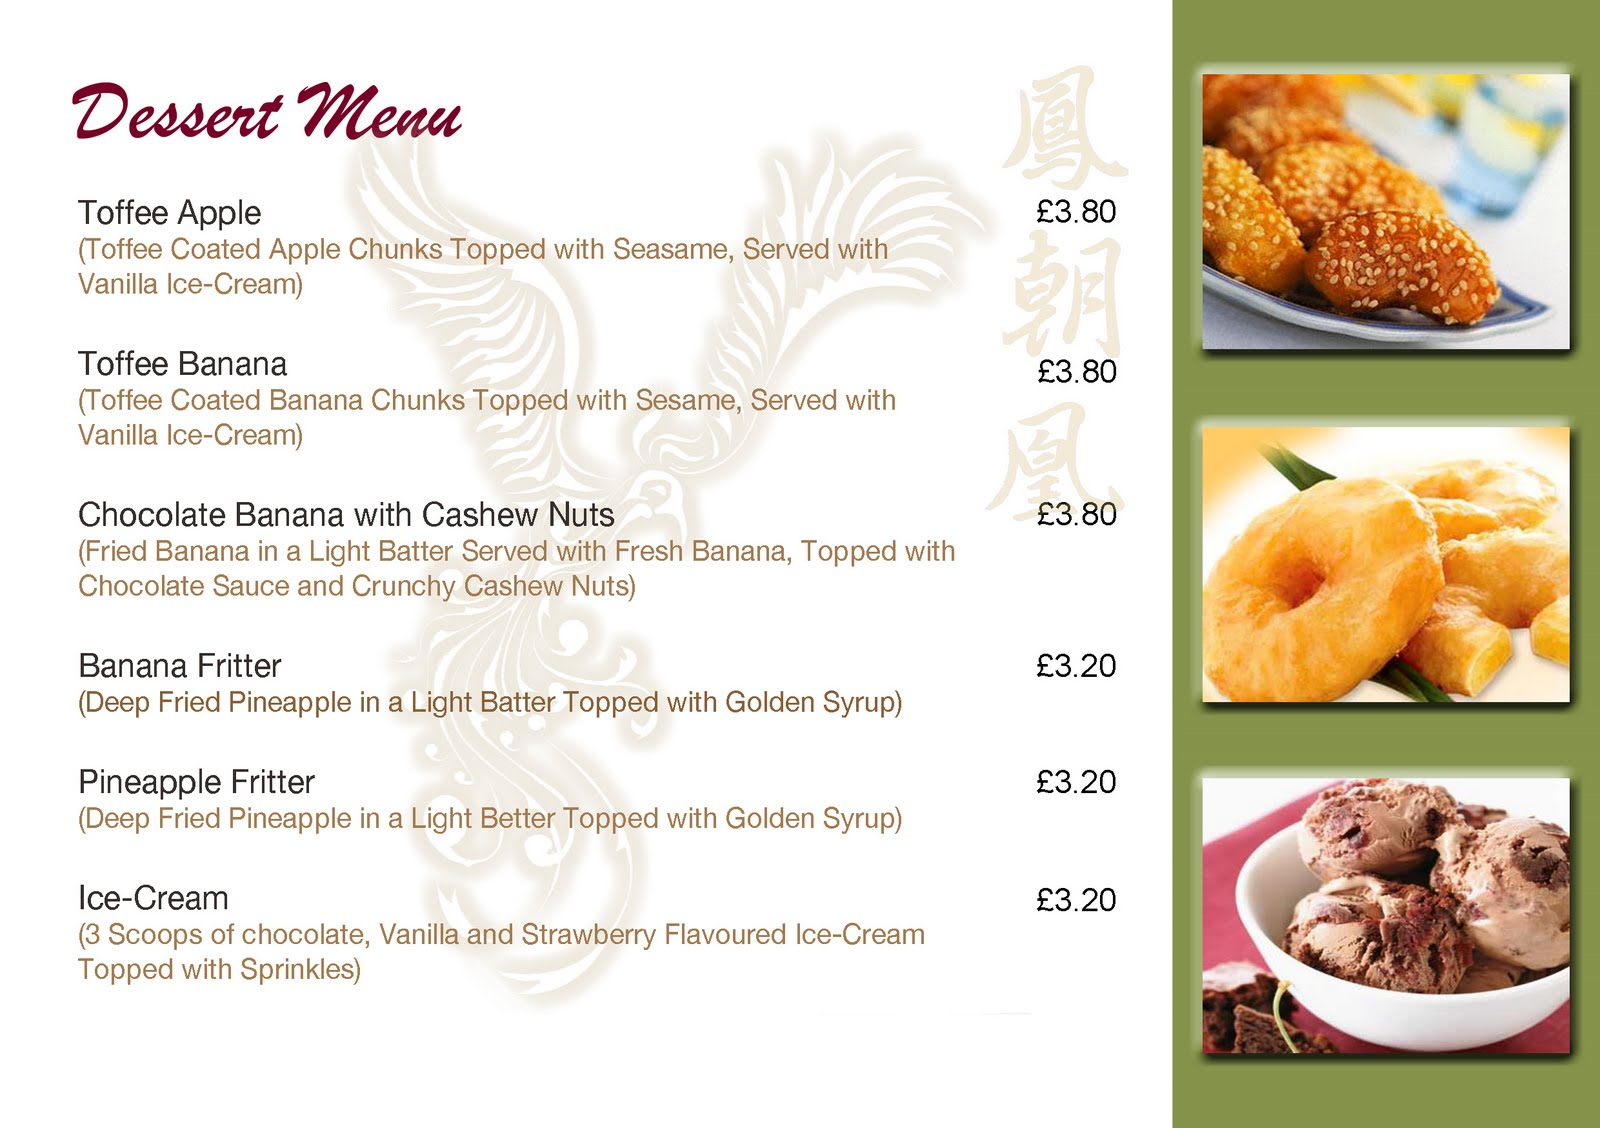 Phoenix ii chinese cuisine sheffield dessert menu for Asian cuisine dessert